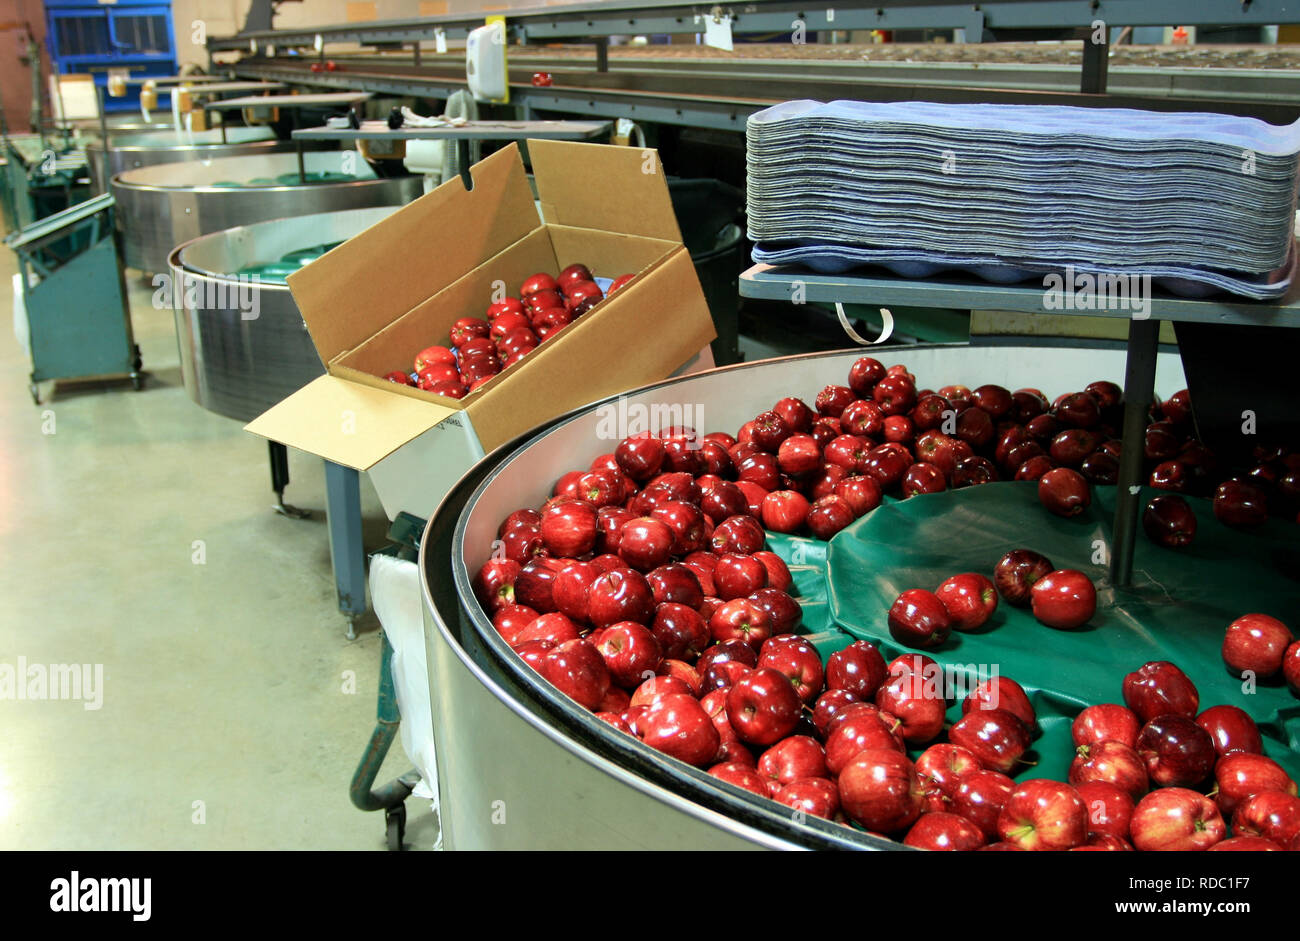 Red Apples in Packing tub in a fruit packaging warehouse with trays and a box on hand - Stock Image